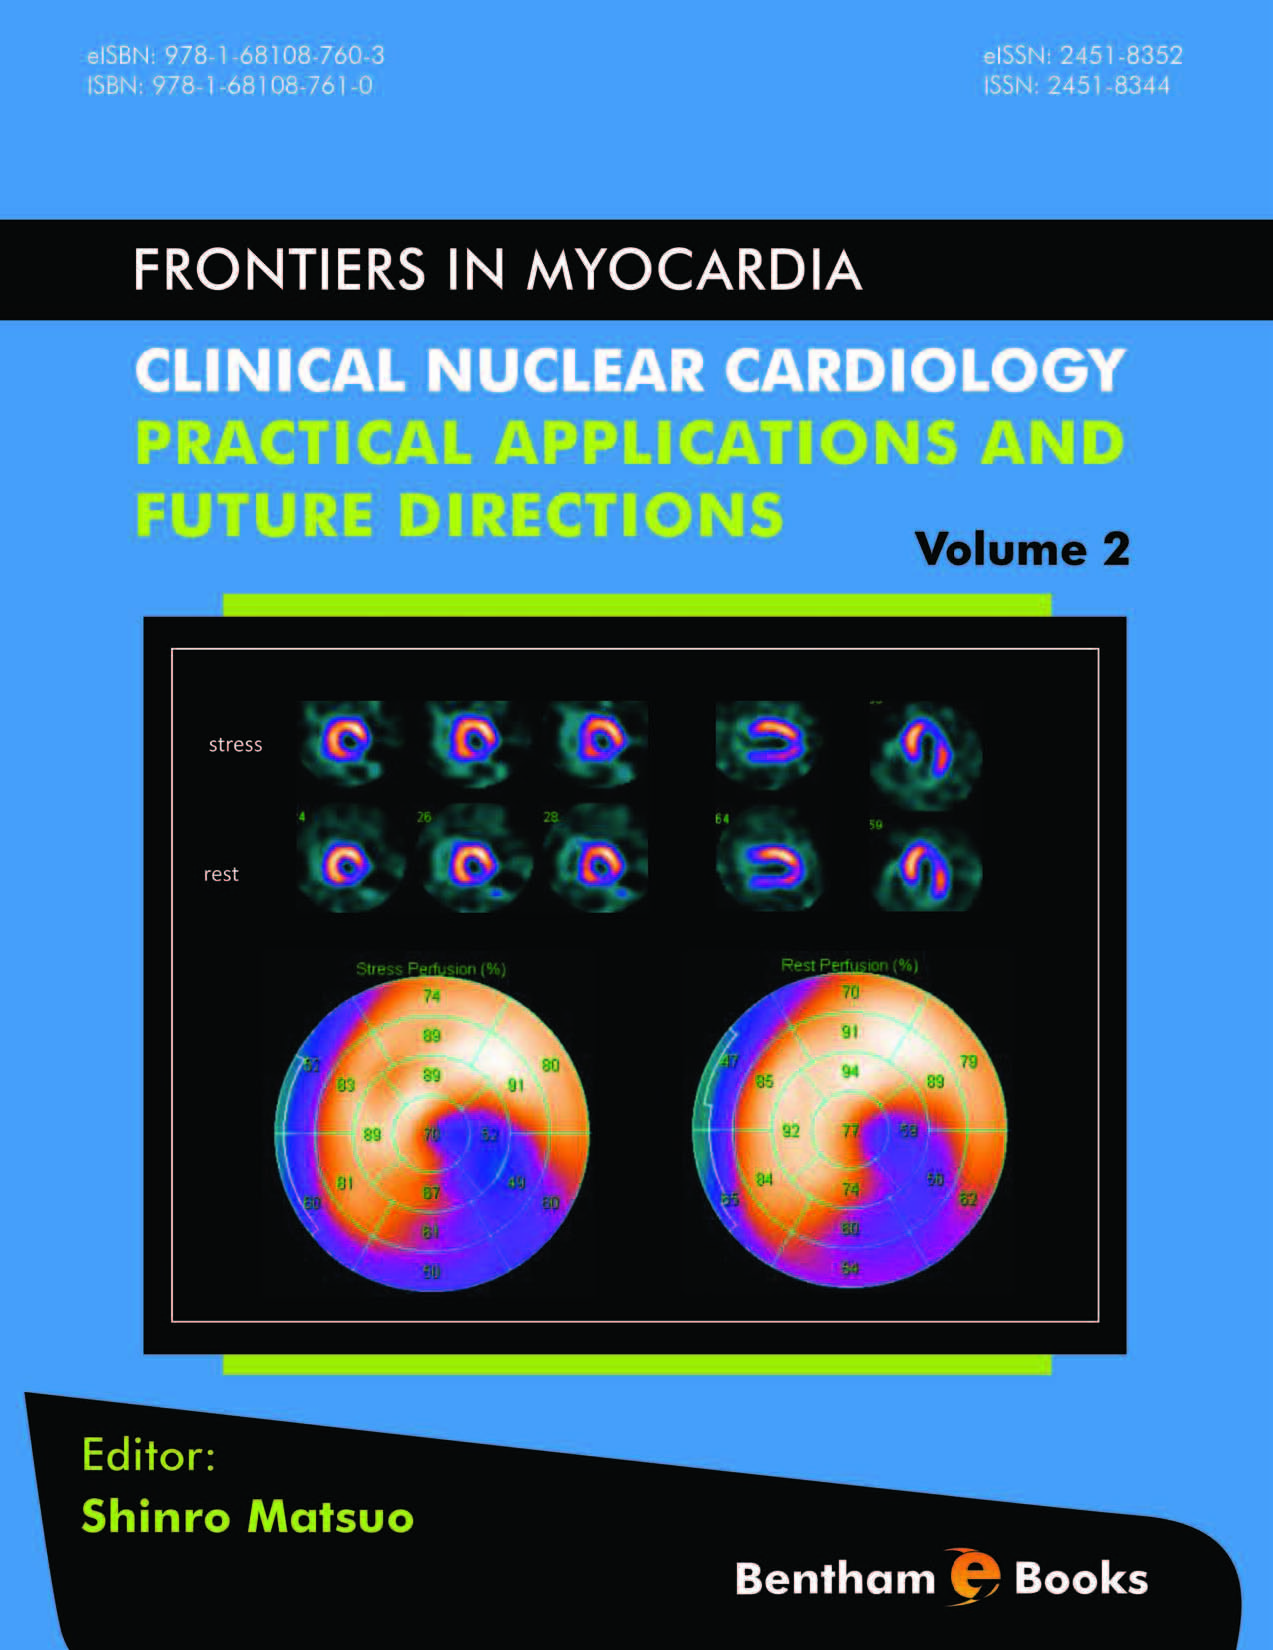 Clinical Nuclear Cardiology: Practical Applications and Future Directions